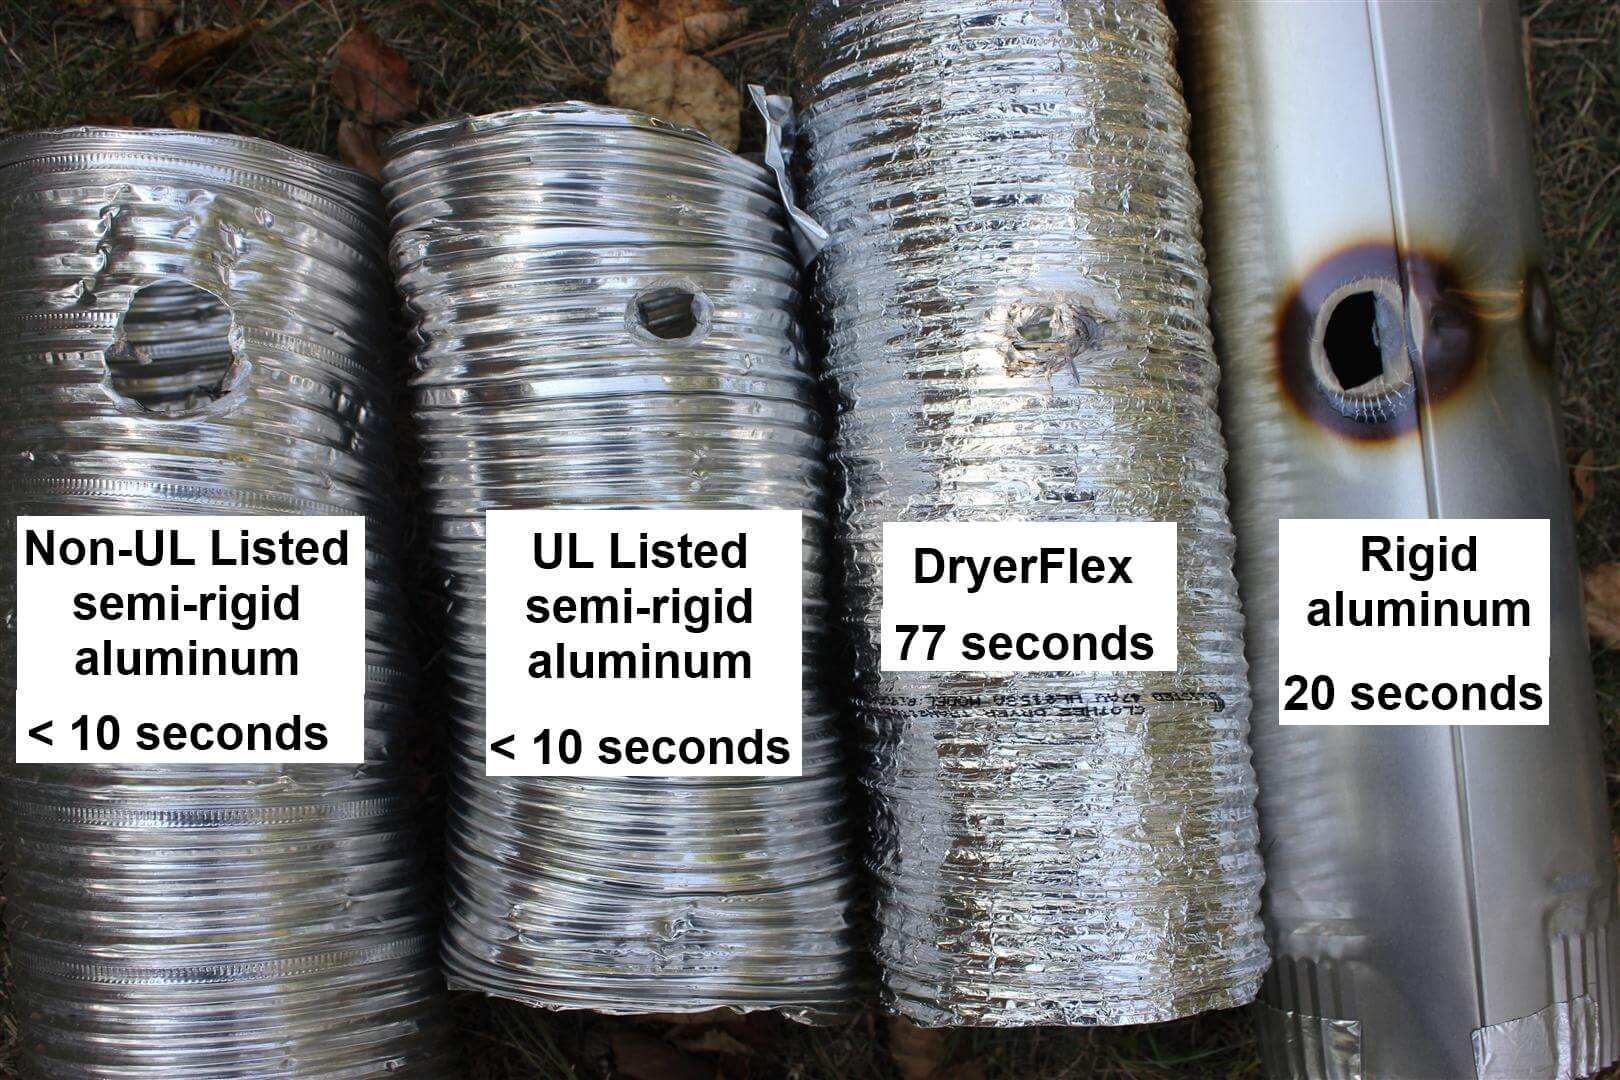 Dryerflex A Superior Dryer Transition Duct Startribune Com